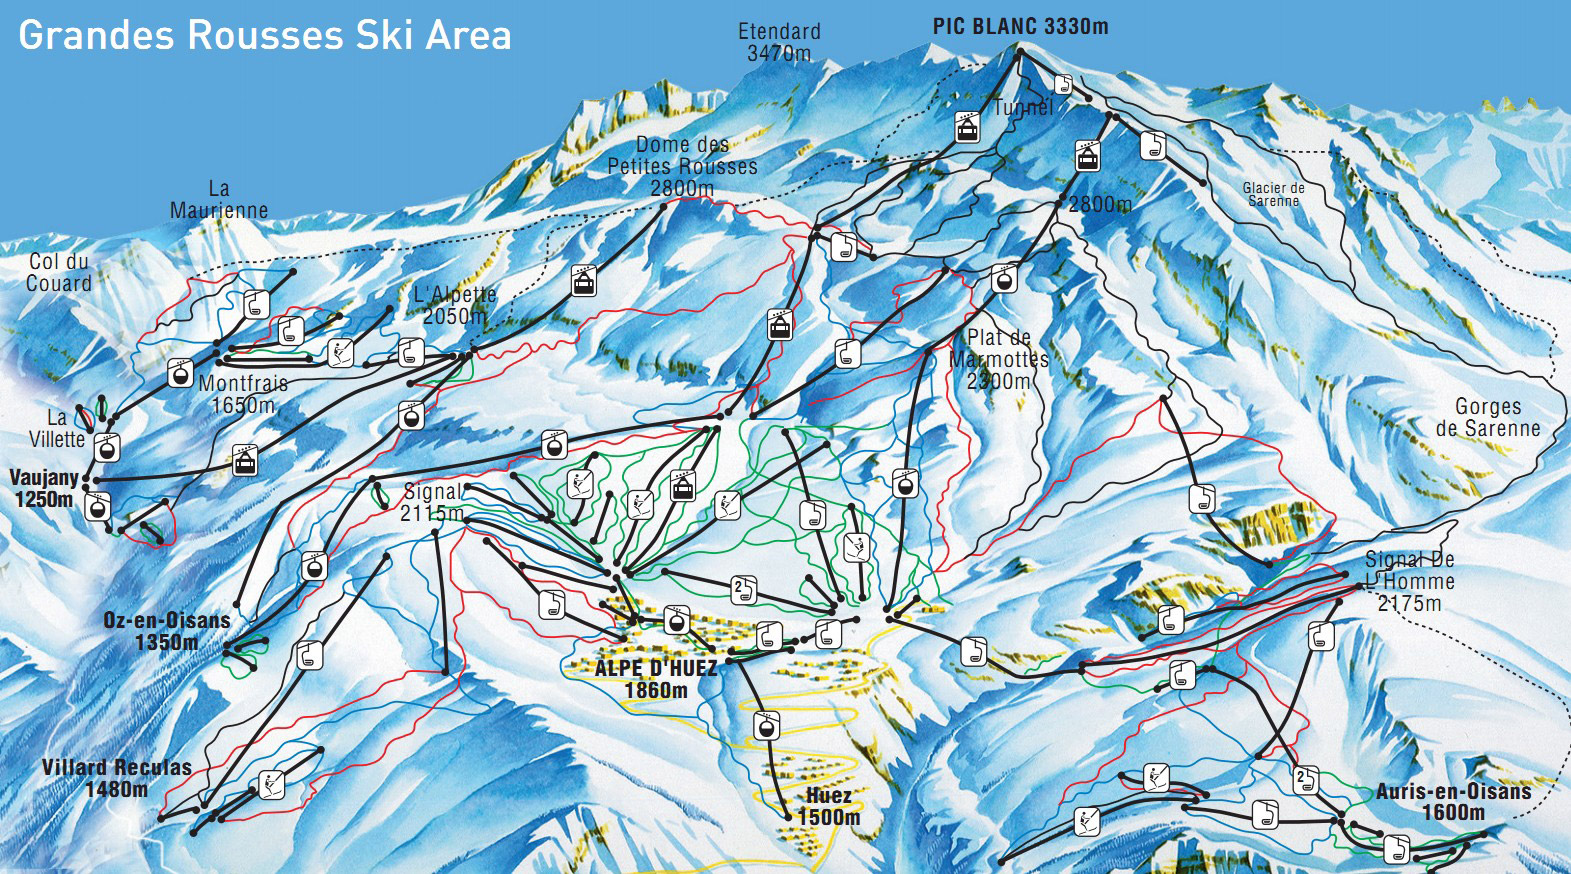 Ski Resort Piste Maps Family Skiing Holidays Esprit Ski